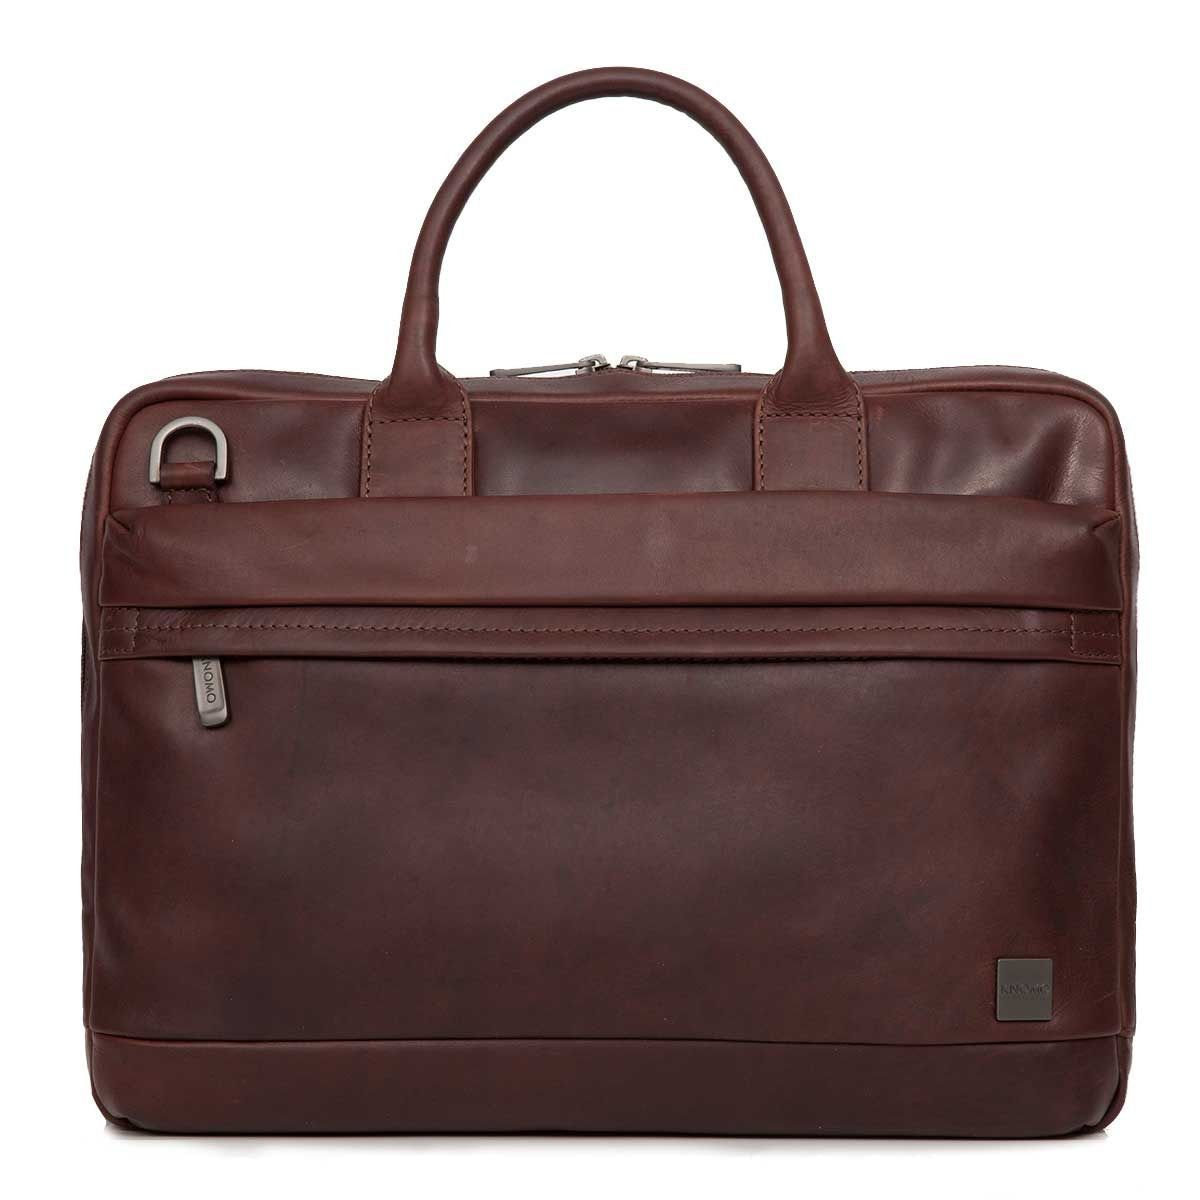 Knomo Foster Leather Laptop Briefcase Brown 14 inch